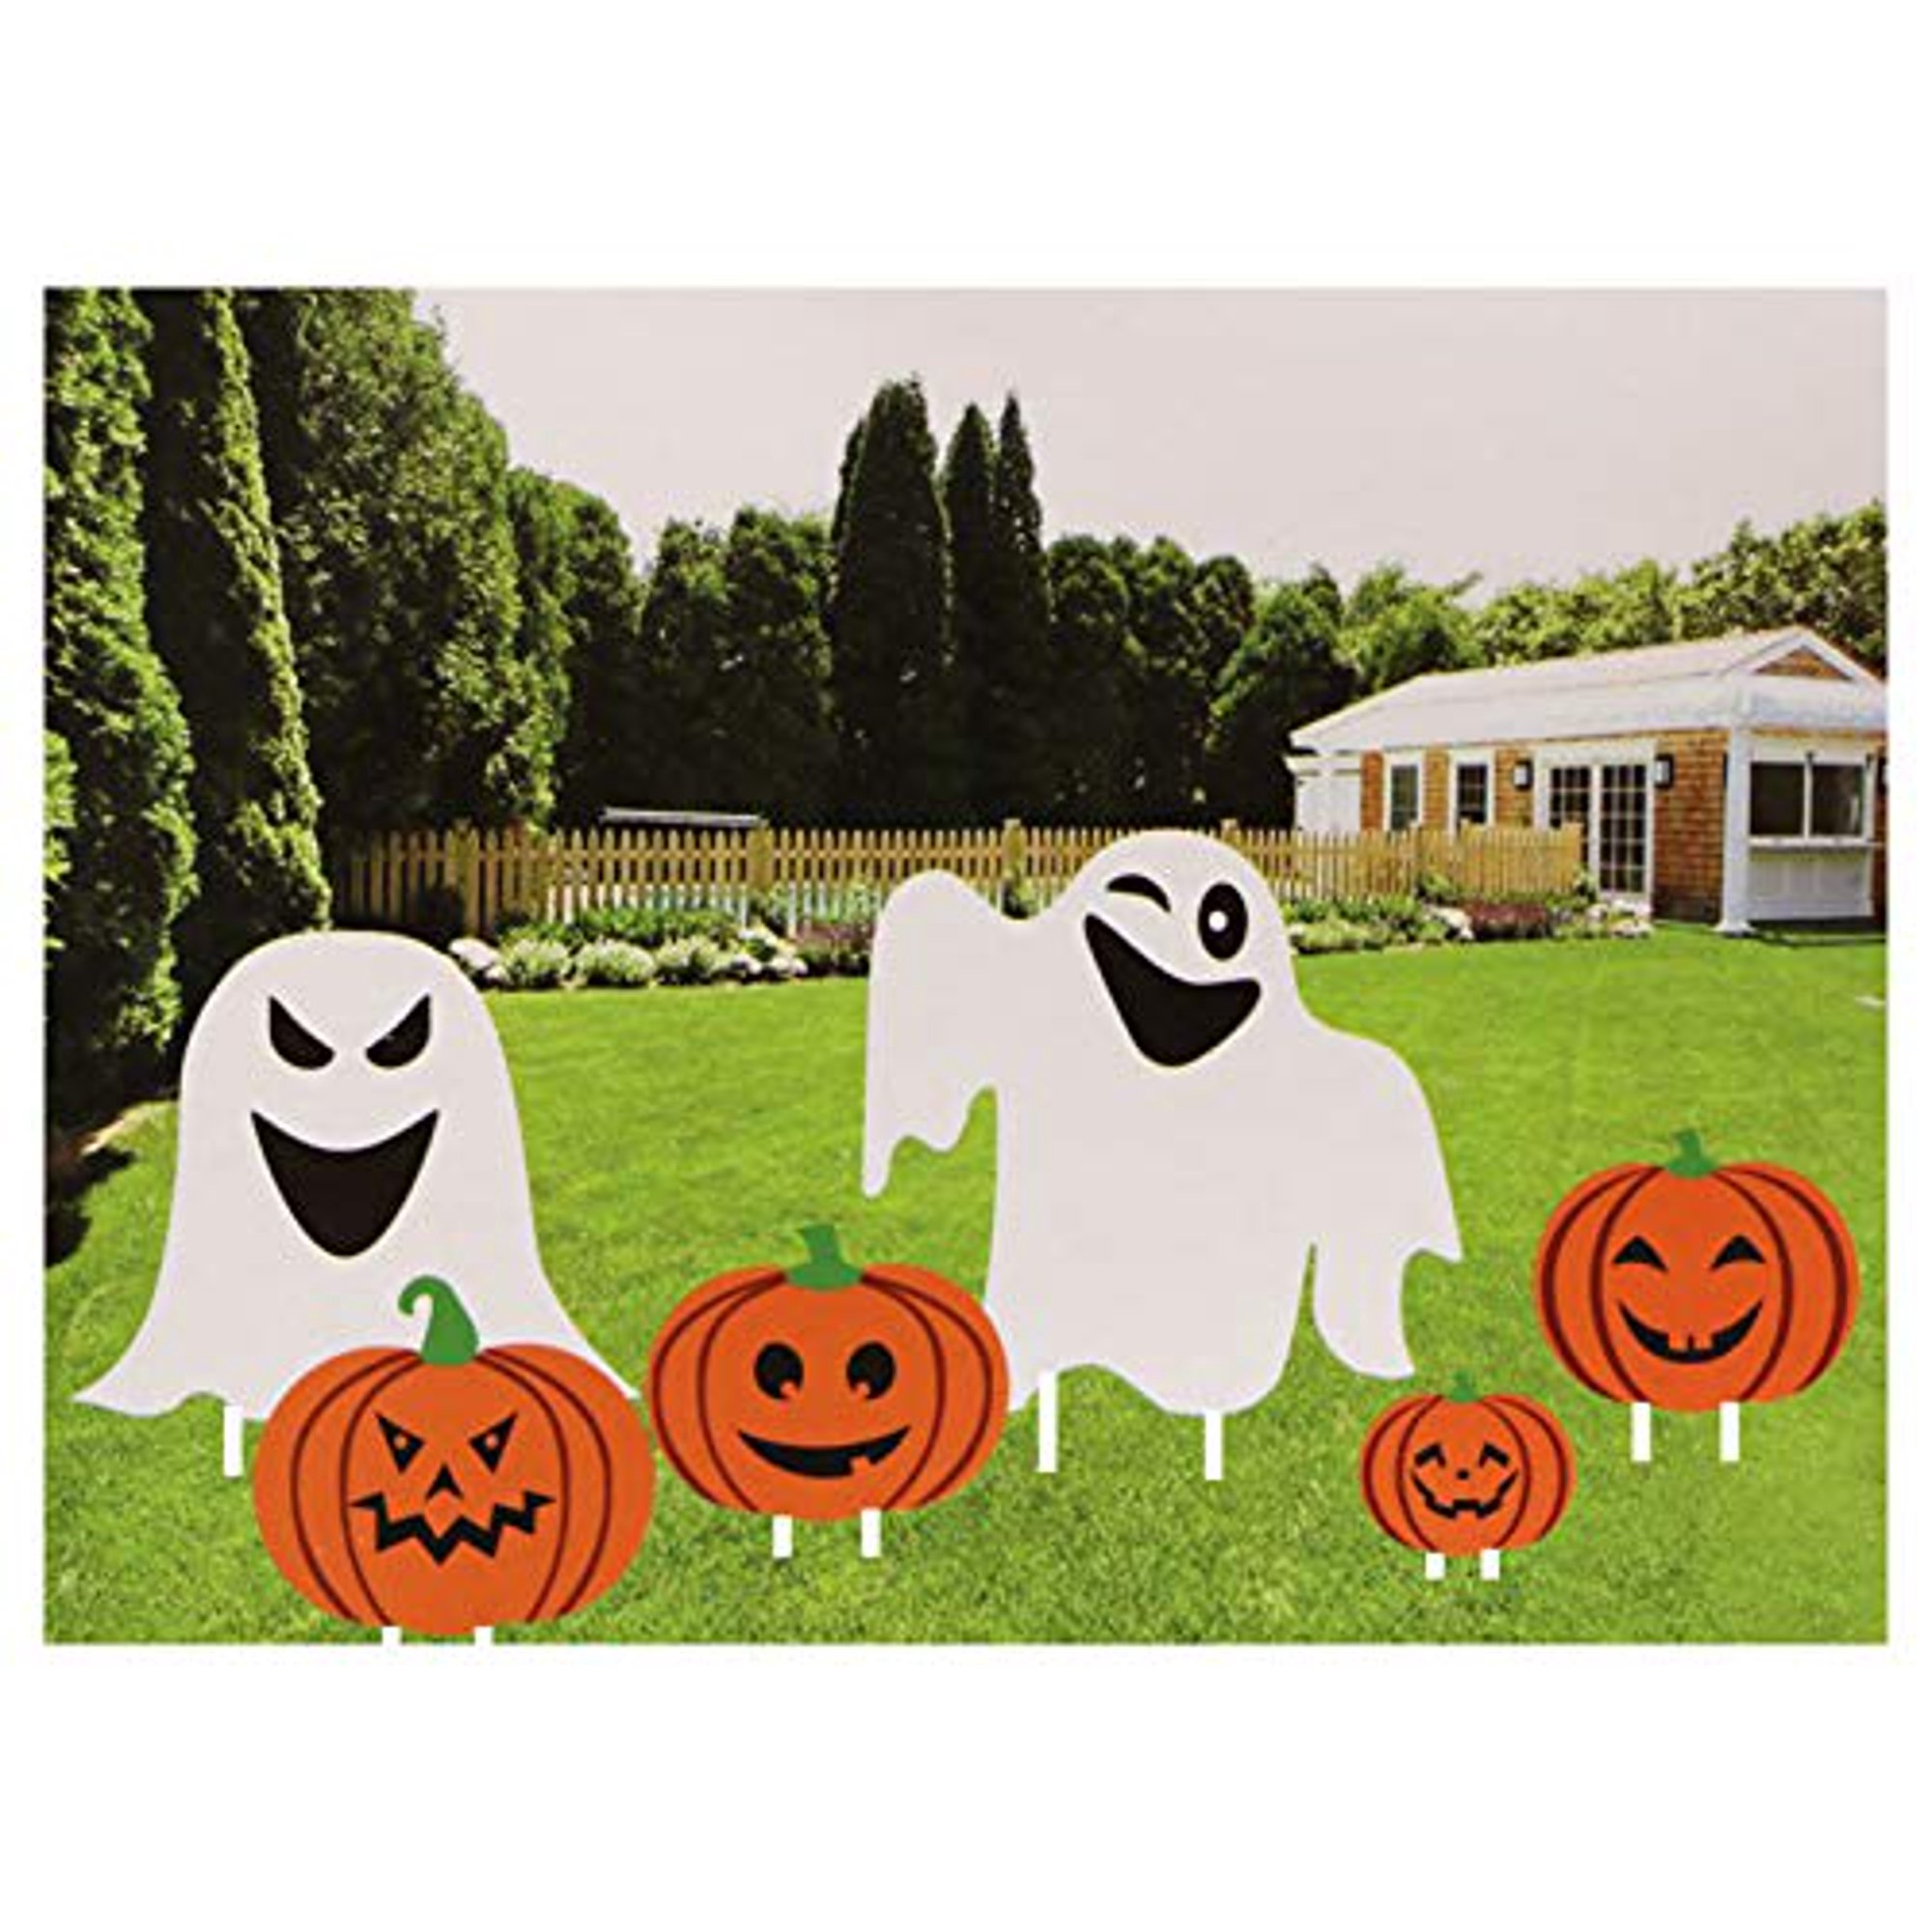 Fright Night Halloween Pumpkin and Ghost Yard Decoration Stakes 6 Pack